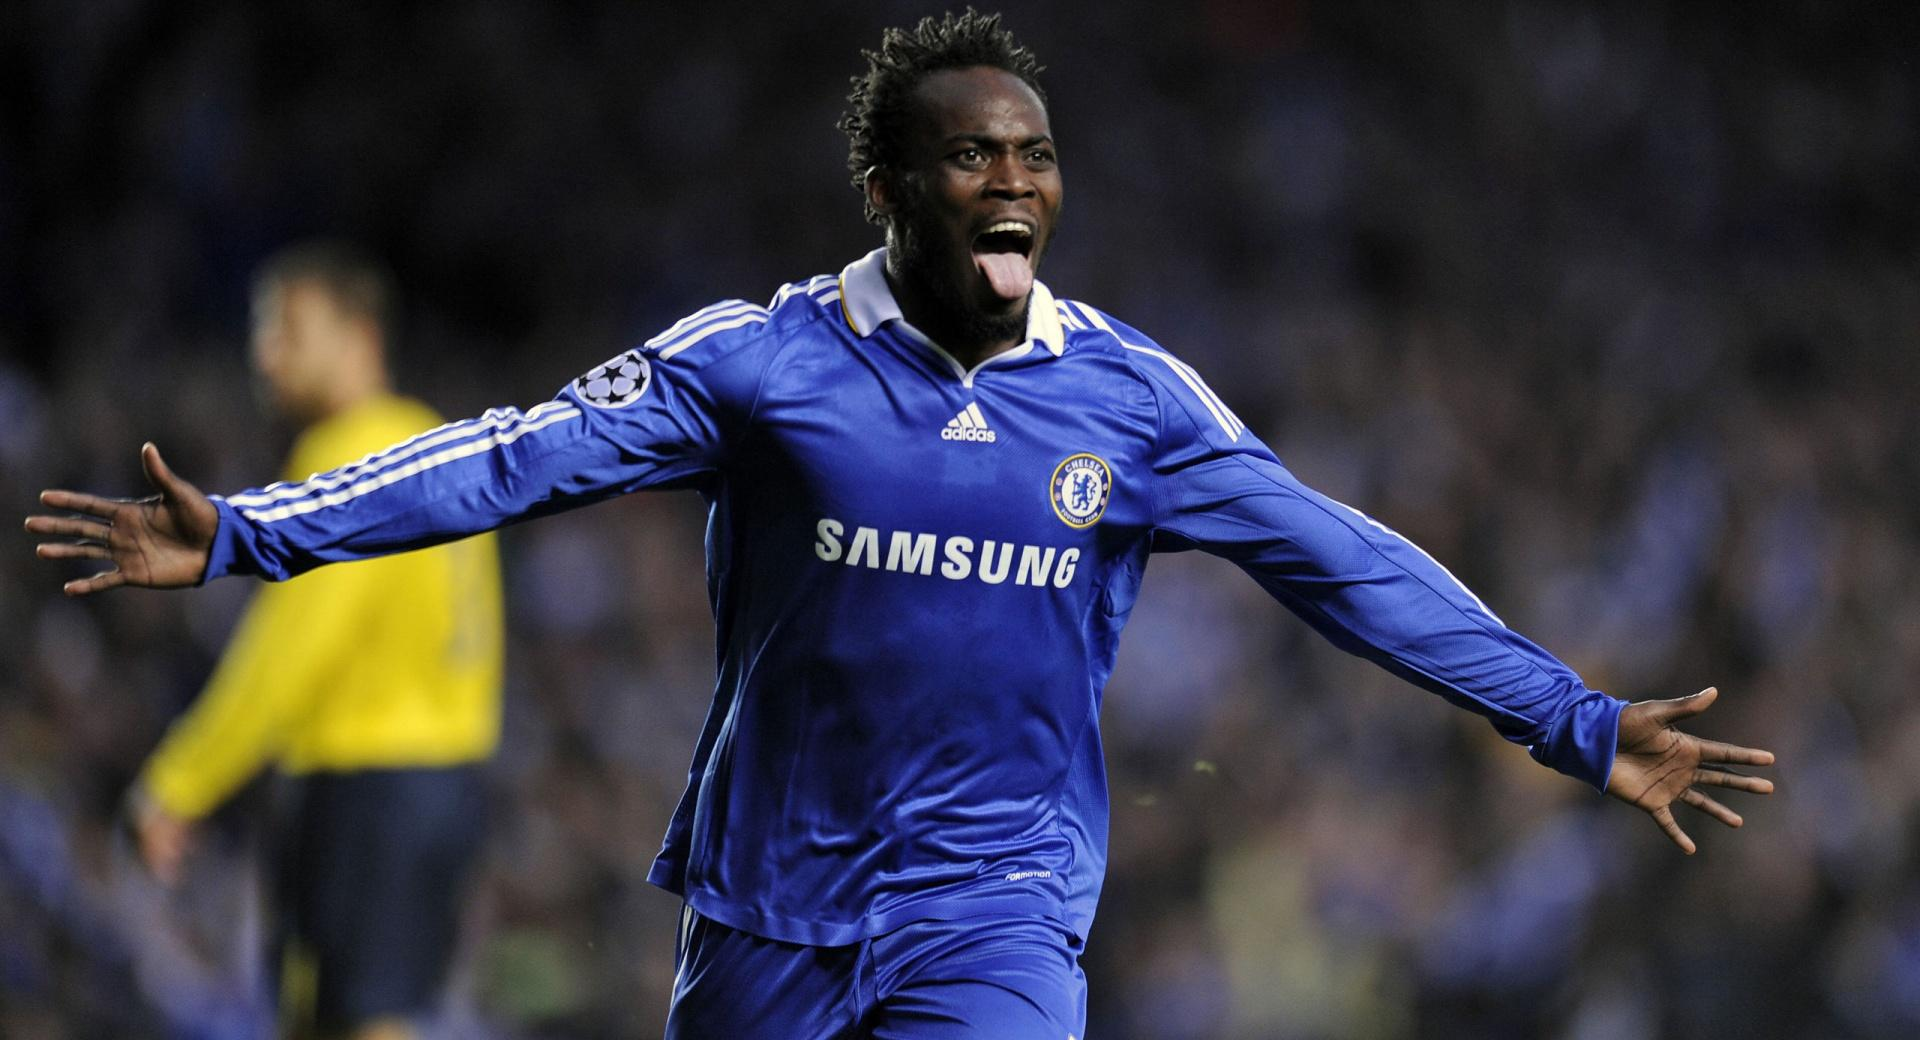 Michael Essien wallpapers HD quality